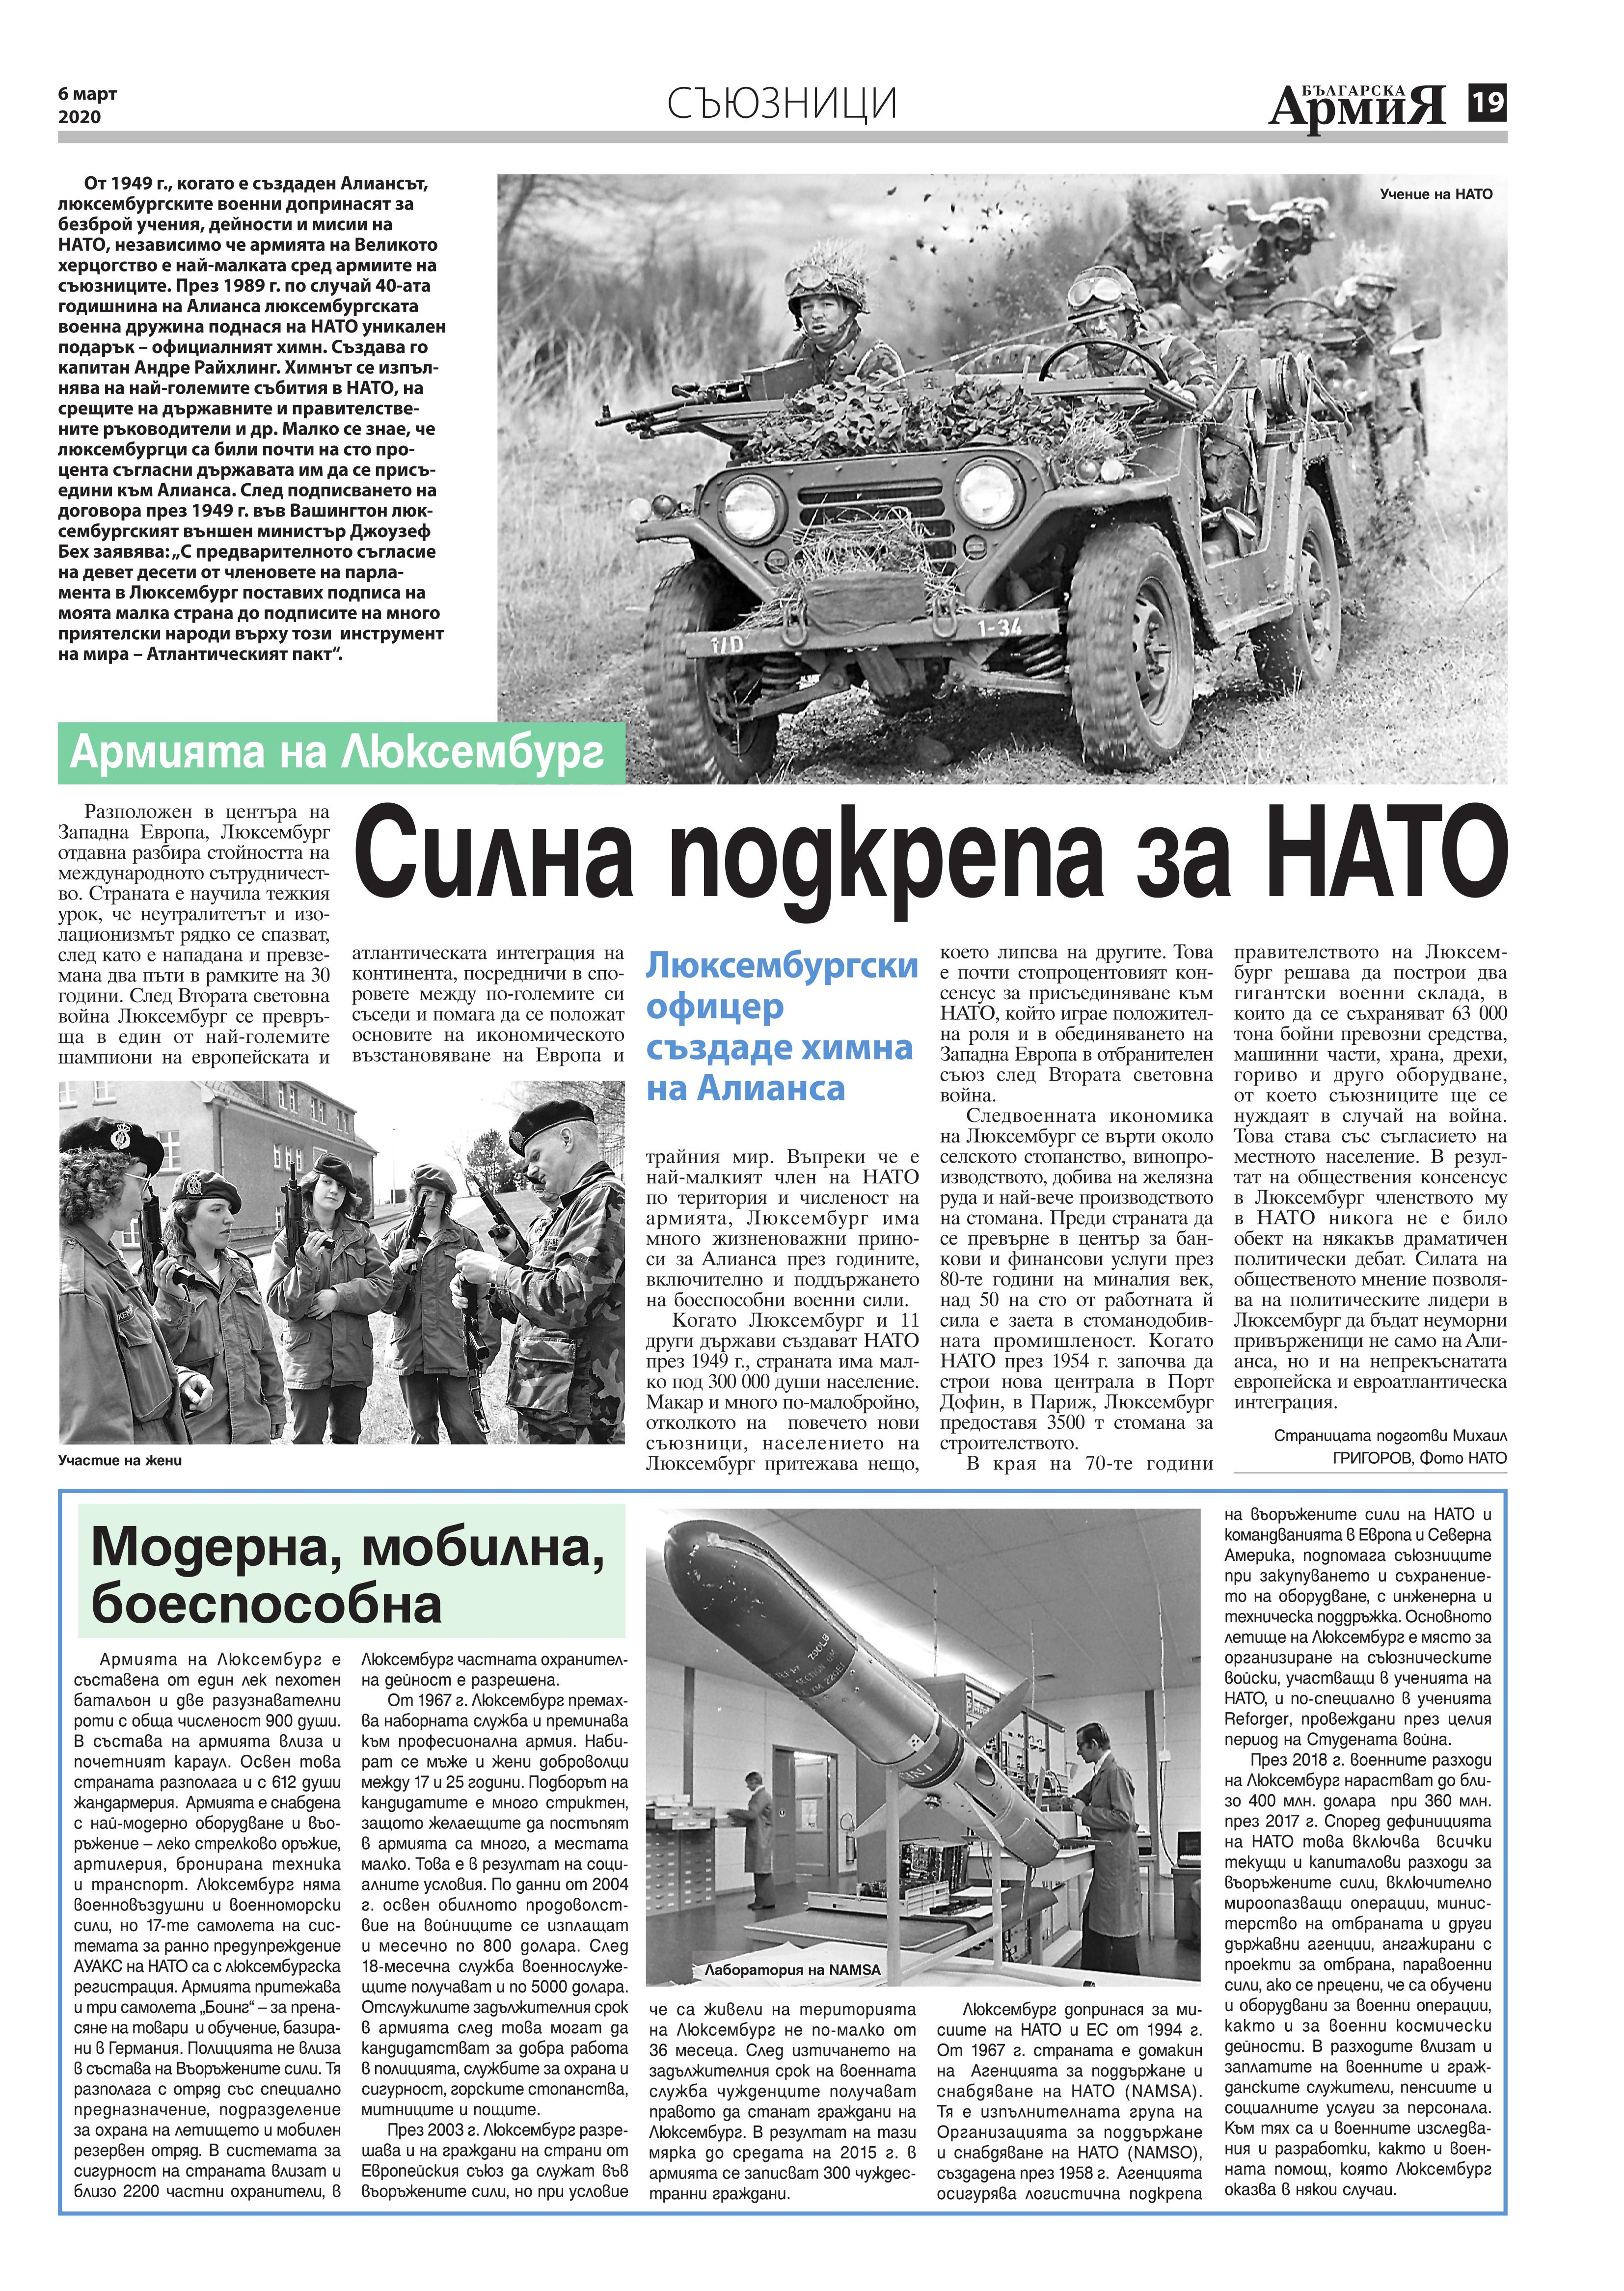 https://www.armymedia.bg/wp-content/uploads/2015/06/19.page1_-130.jpg